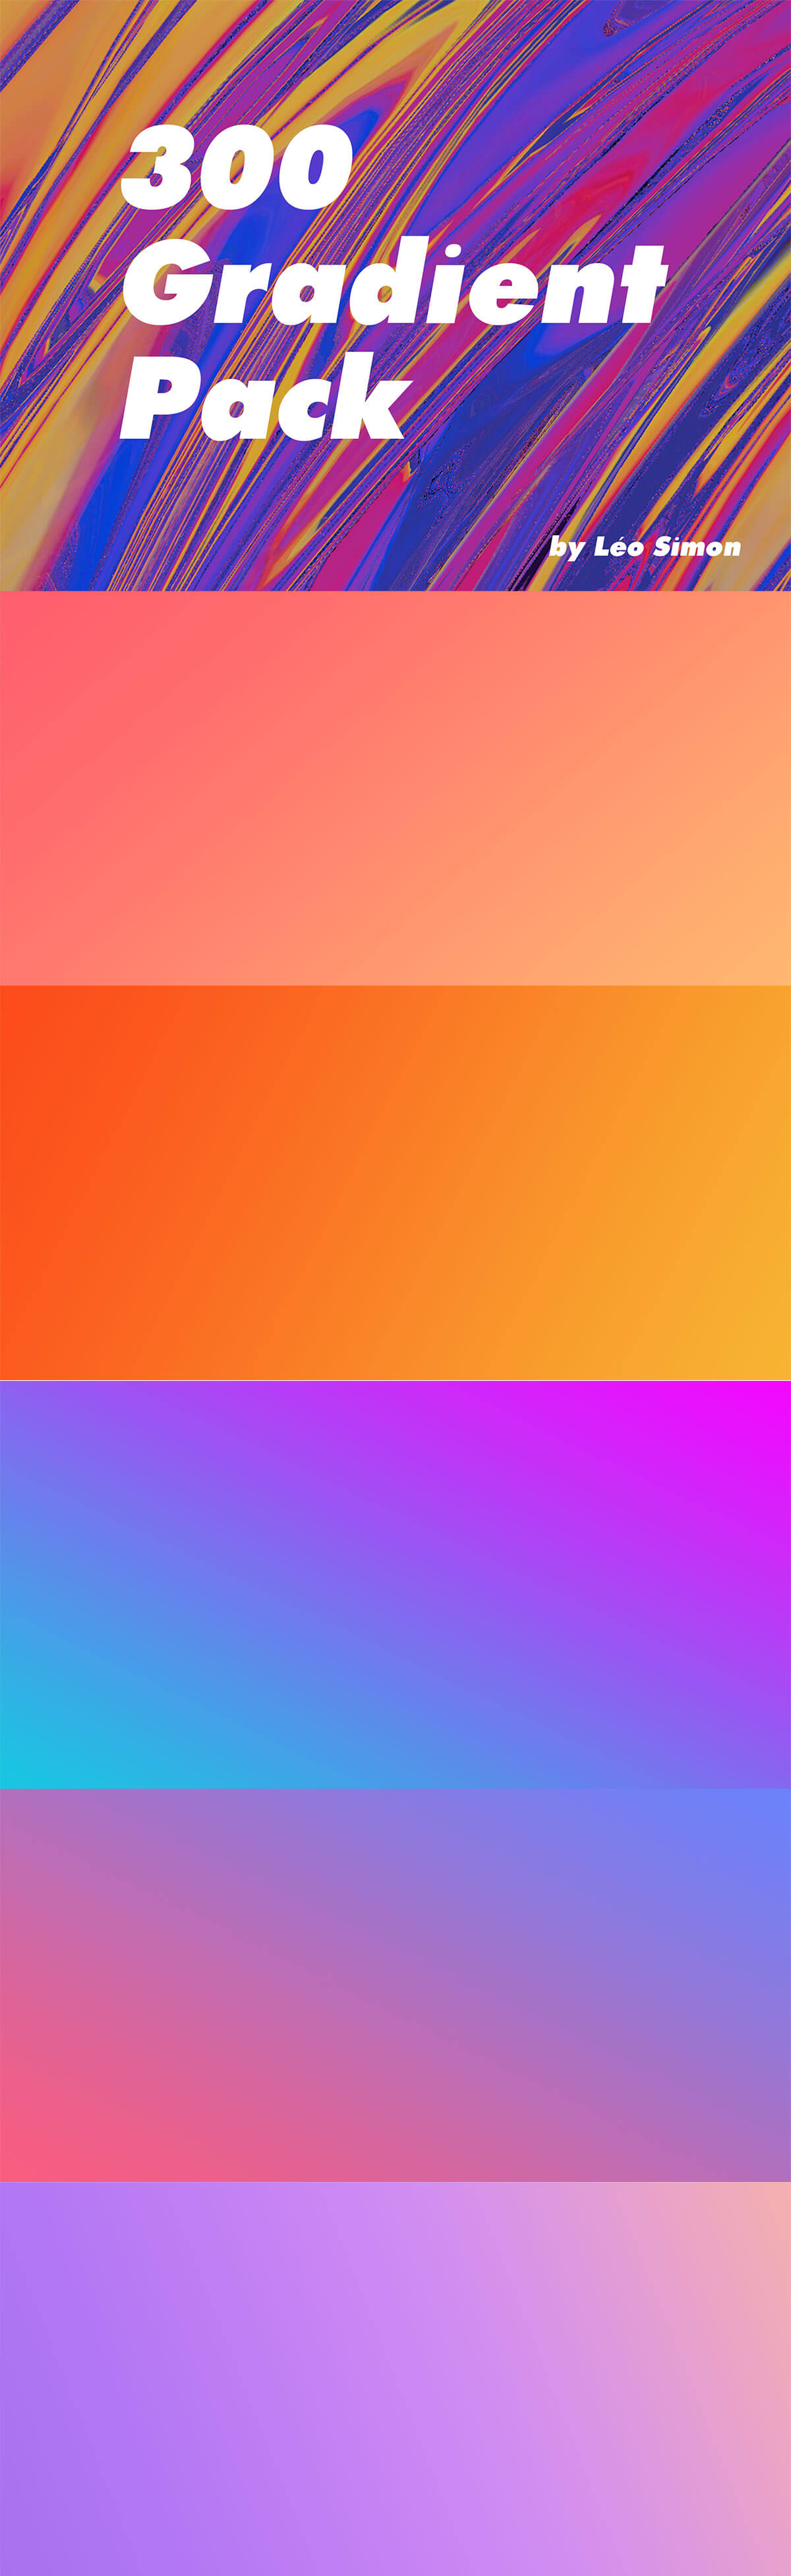 Photoshop Gradients - 300-Free-Gradient-Pack-1